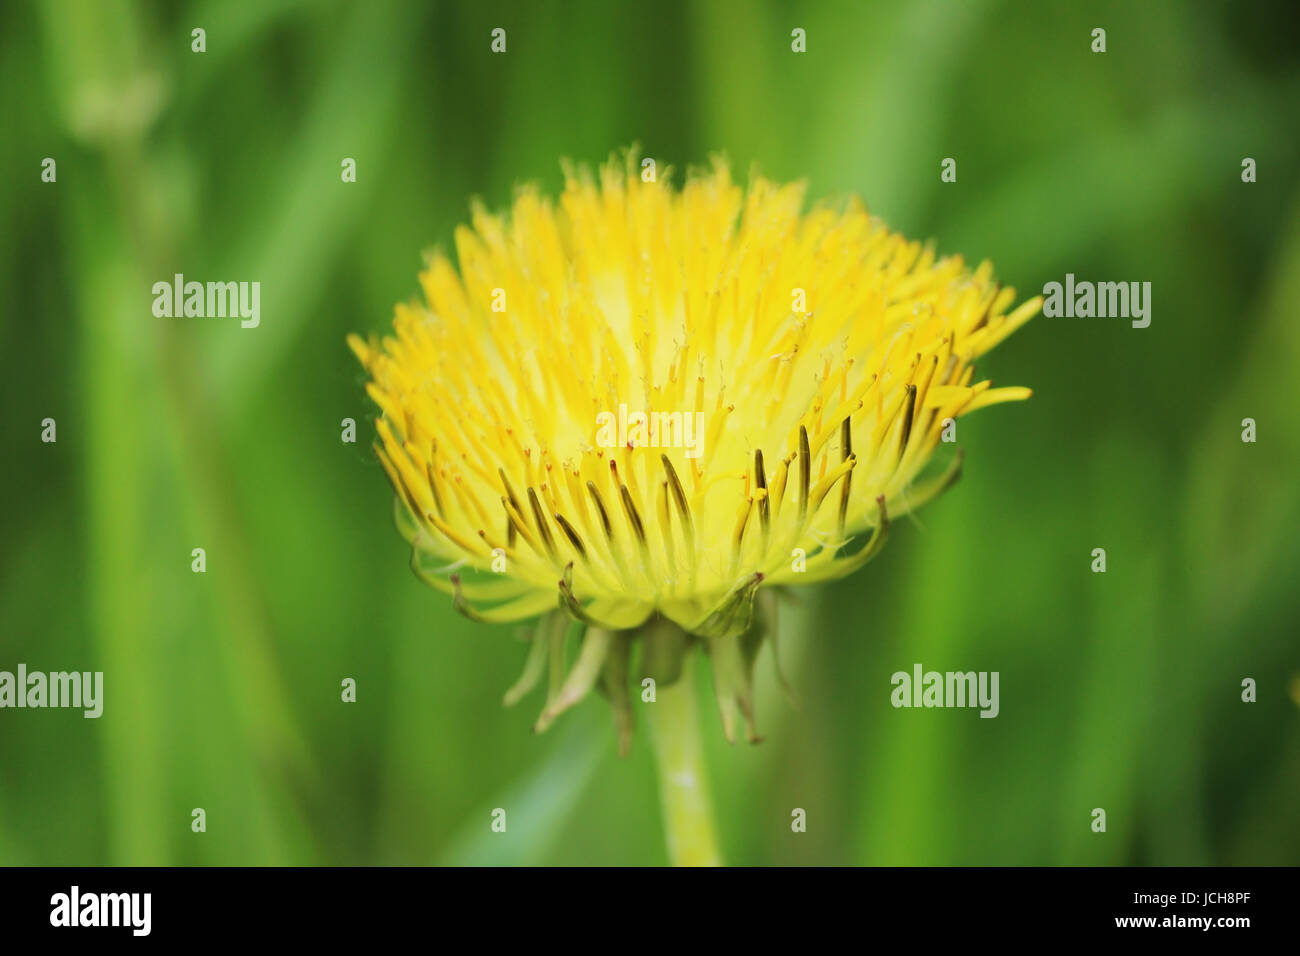 Defective dandelion Taraxacum officinale one yellow flower with atrophied petals grows on too fertilized soil - Stock Image